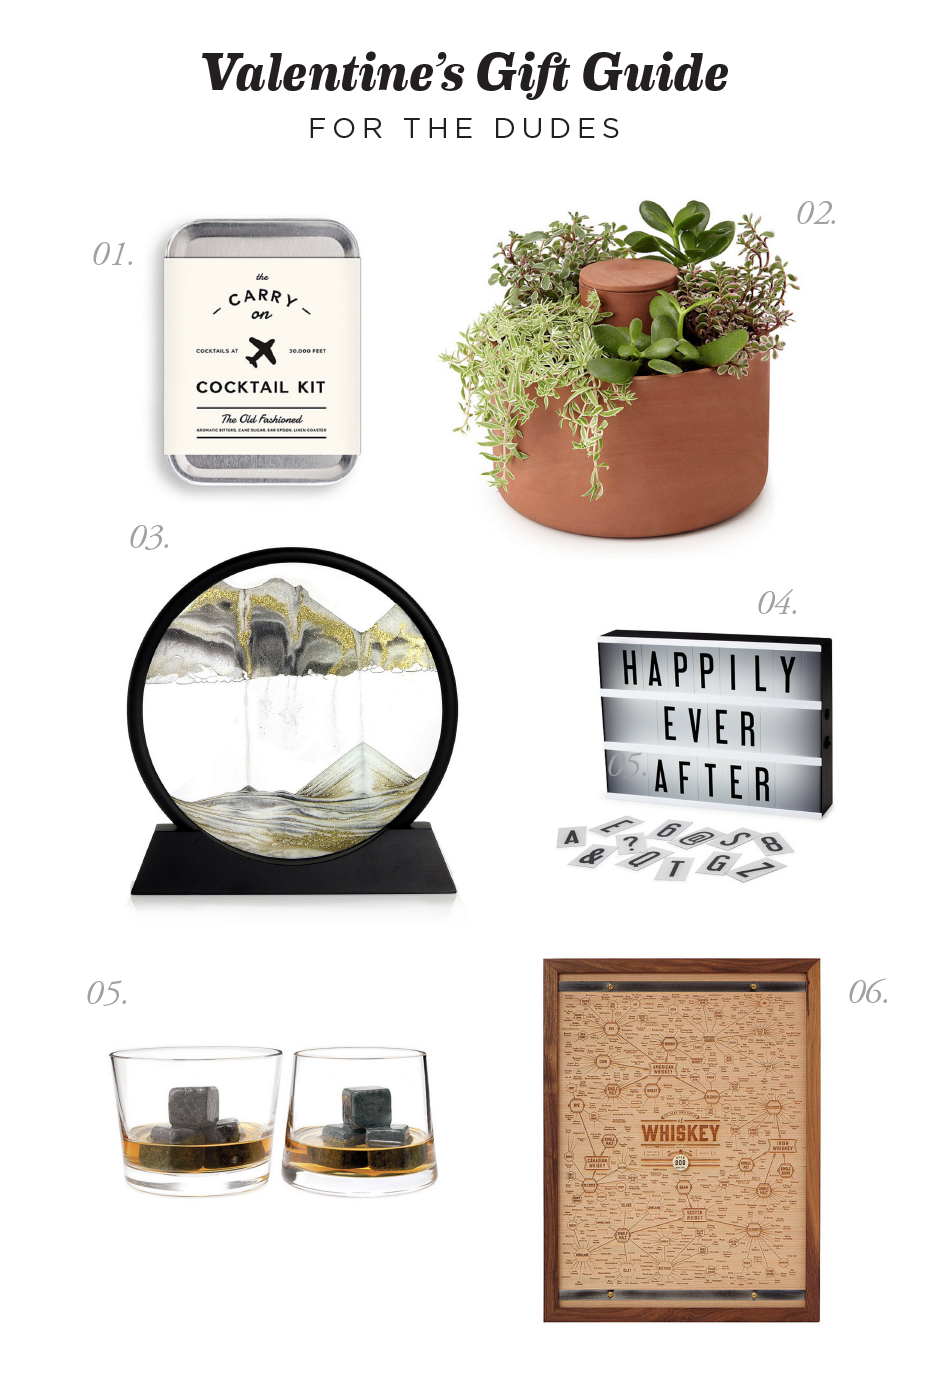 uncommon_goods_valentines_gift_guide